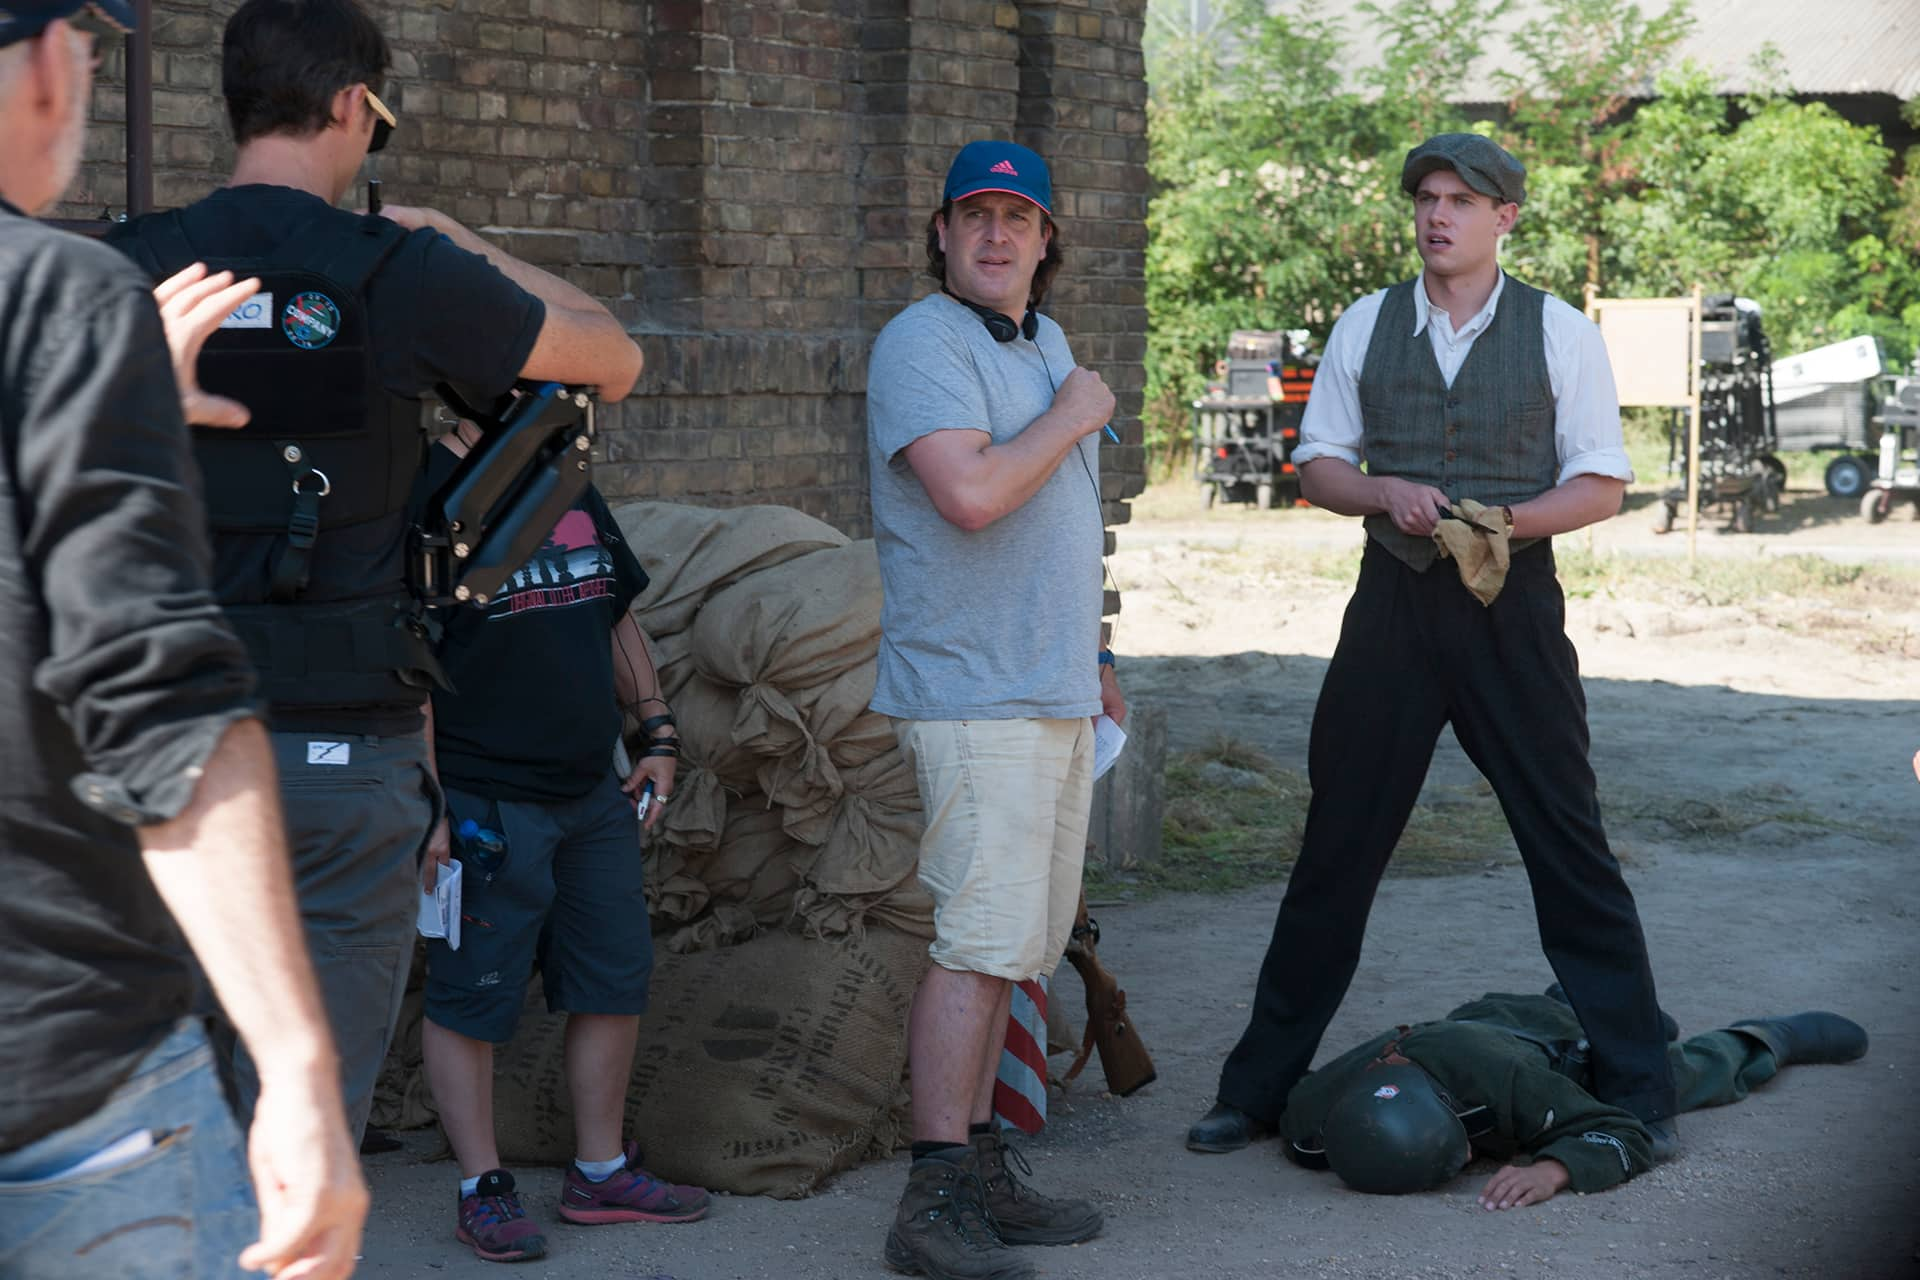 Behind the Scenes on the set of X Company Season 3 with Director Julian Gilbey and Tom Brittney (David).